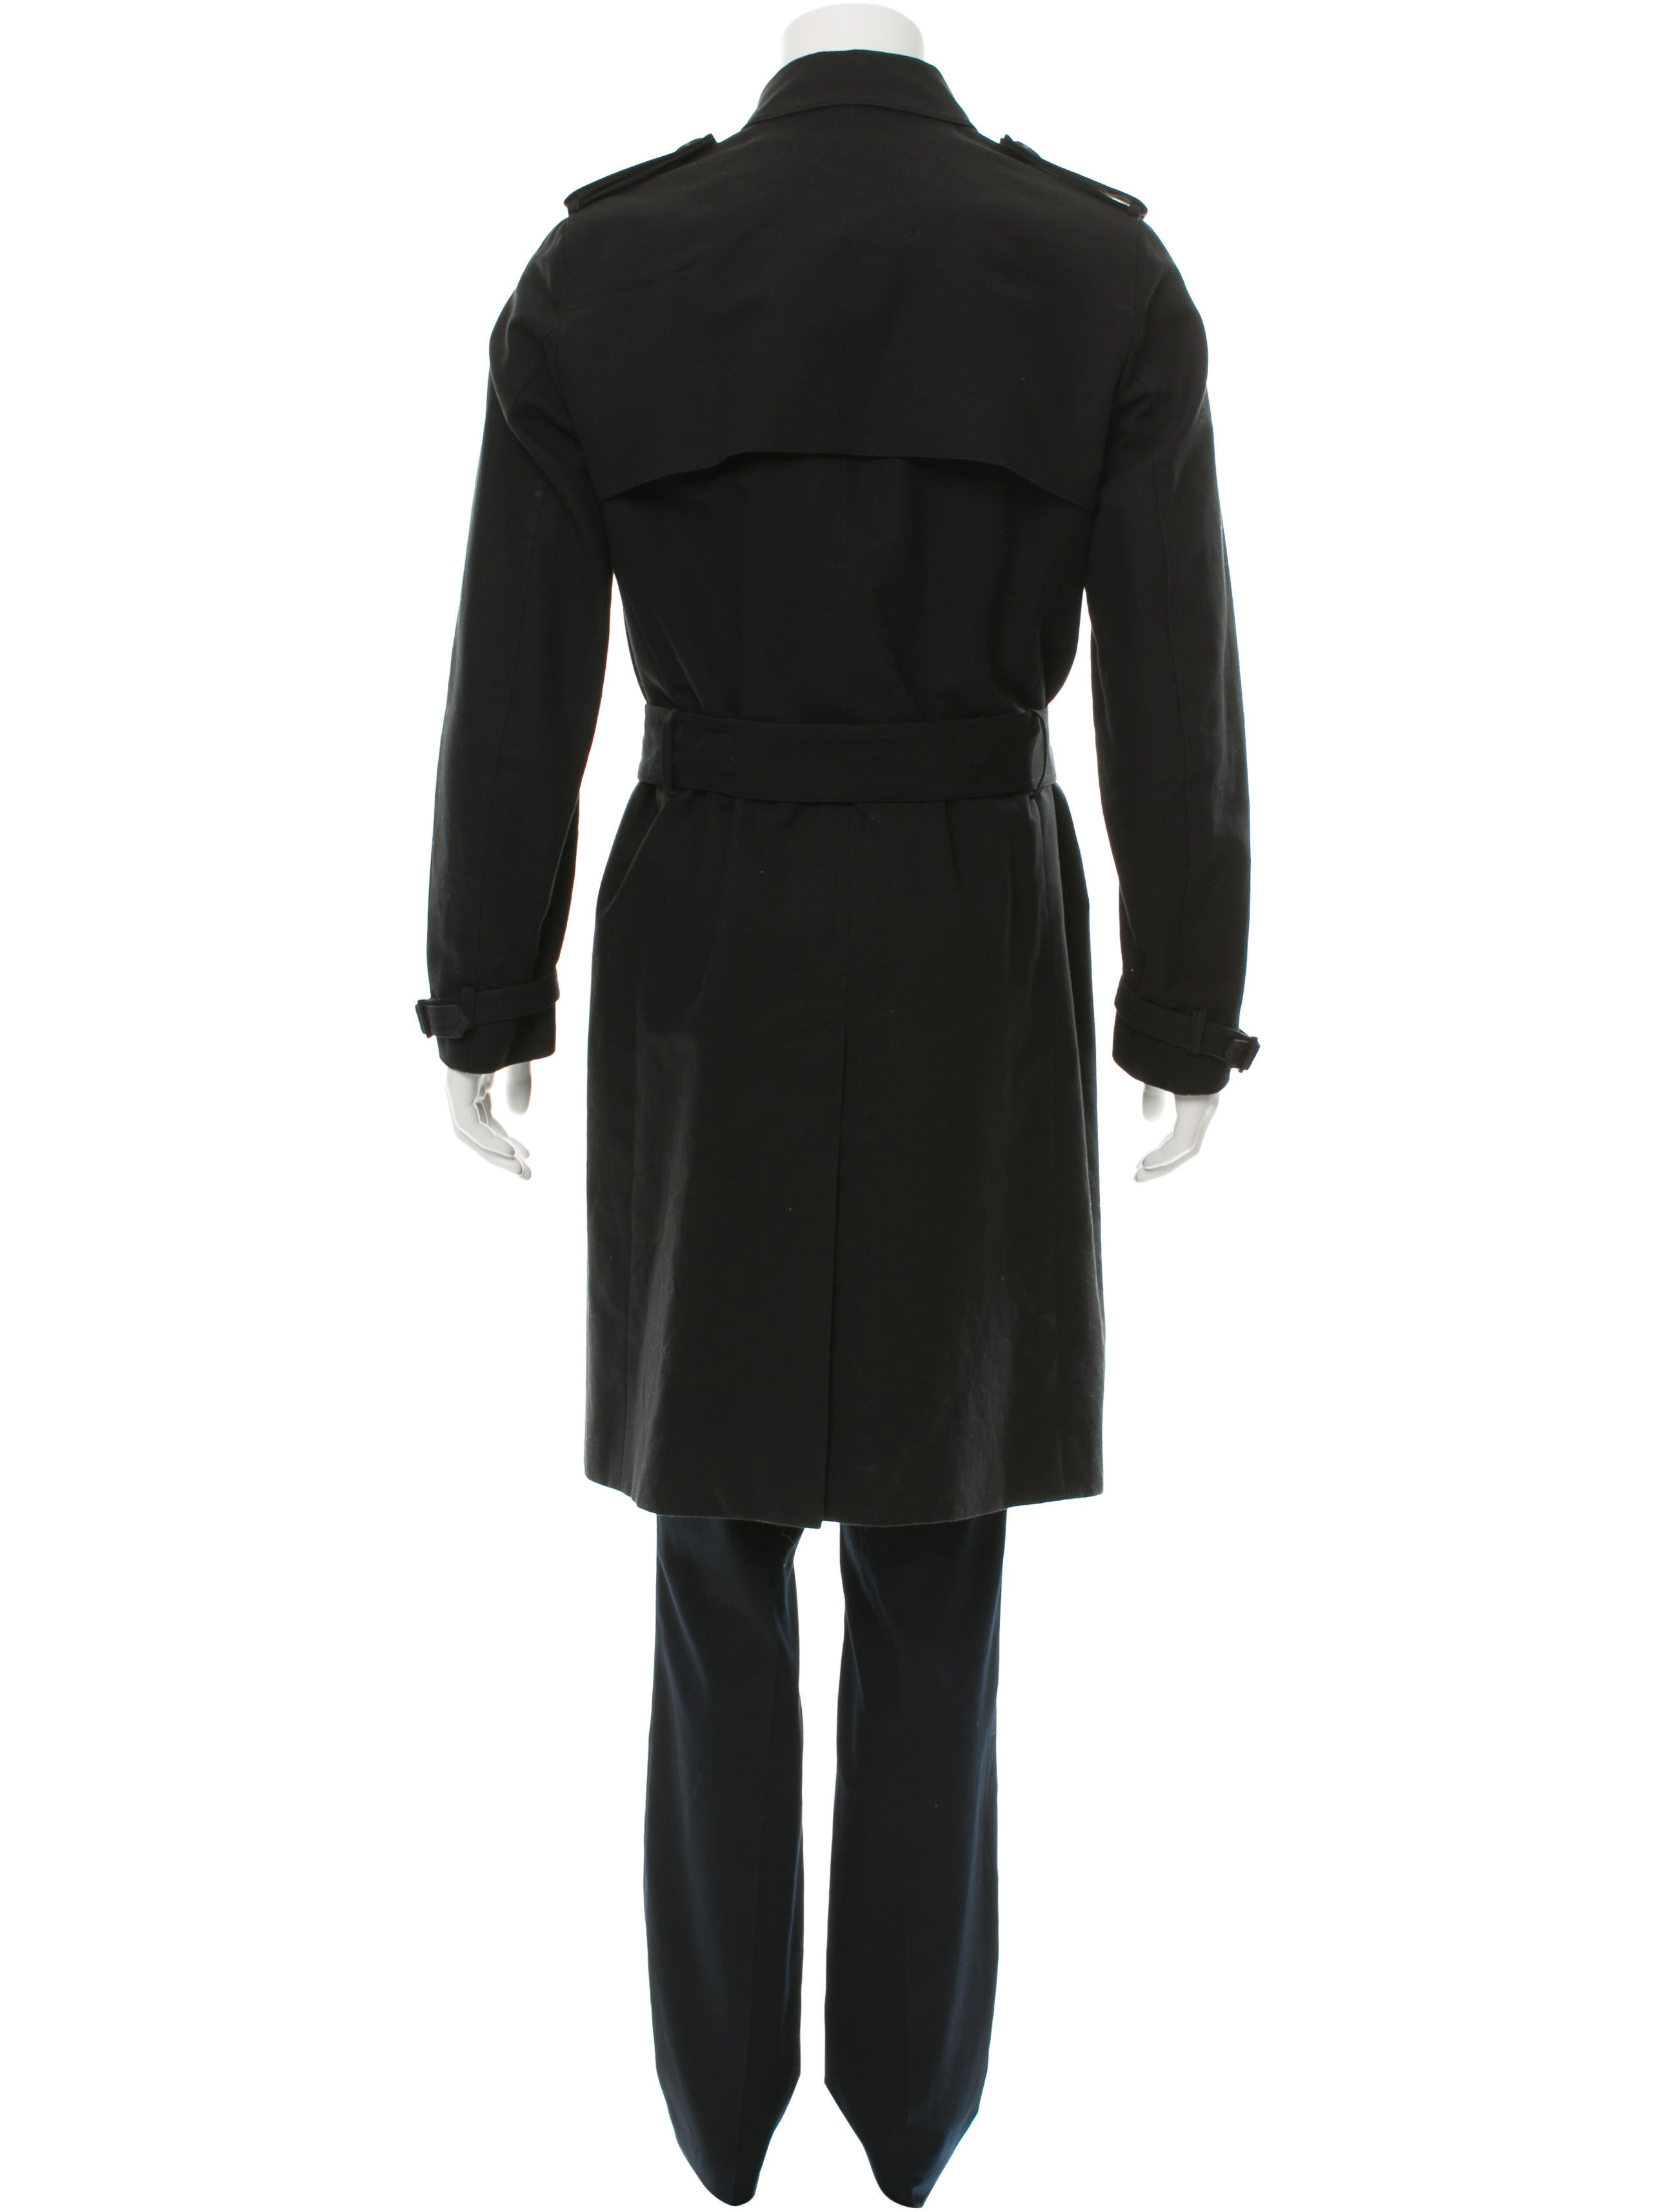 dior homme double breasted trench coat clothing hmm22114 the realreal. Black Bedroom Furniture Sets. Home Design Ideas